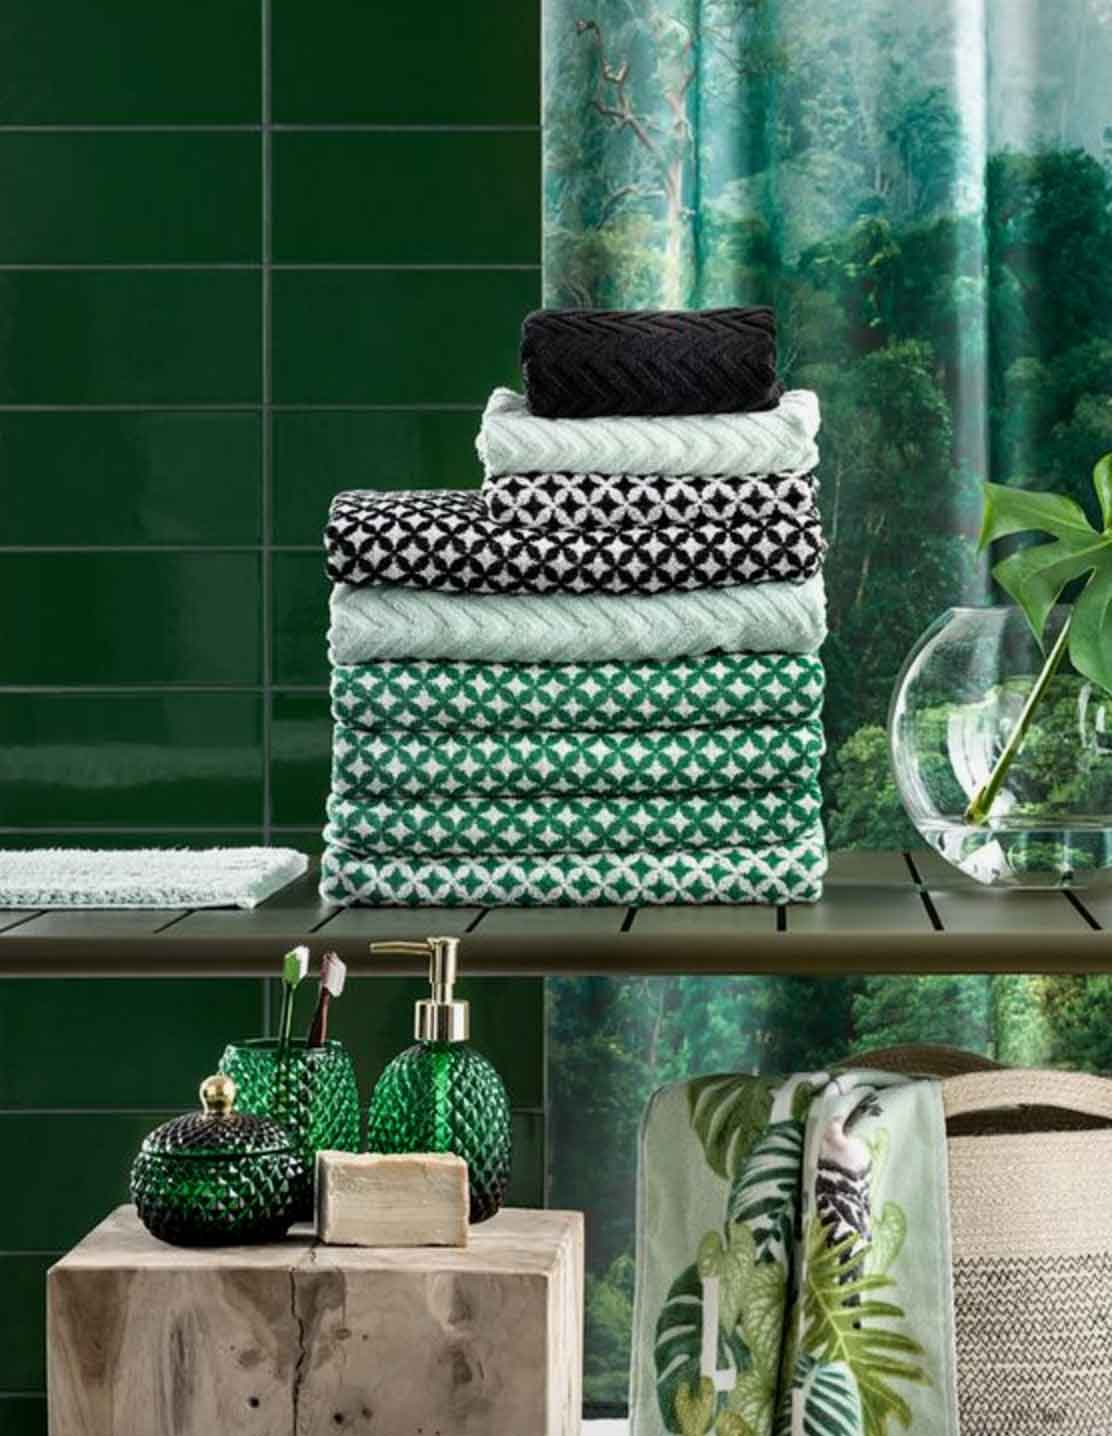 Image of H&M towels from Pinterest